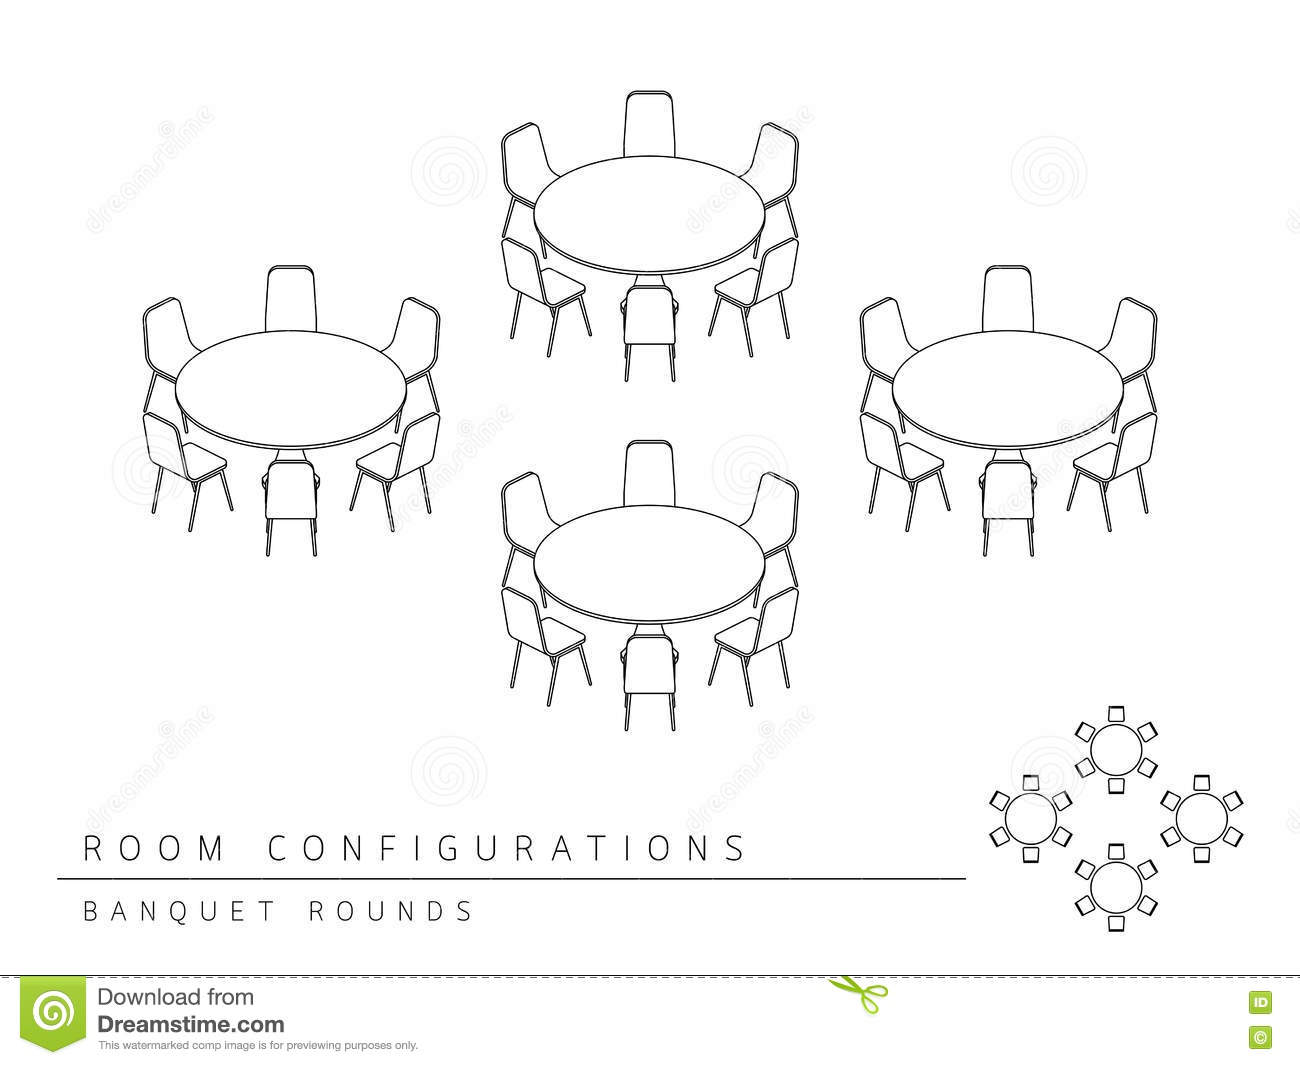 Meeting Room Setup Layout Configuration Banquet Rounds